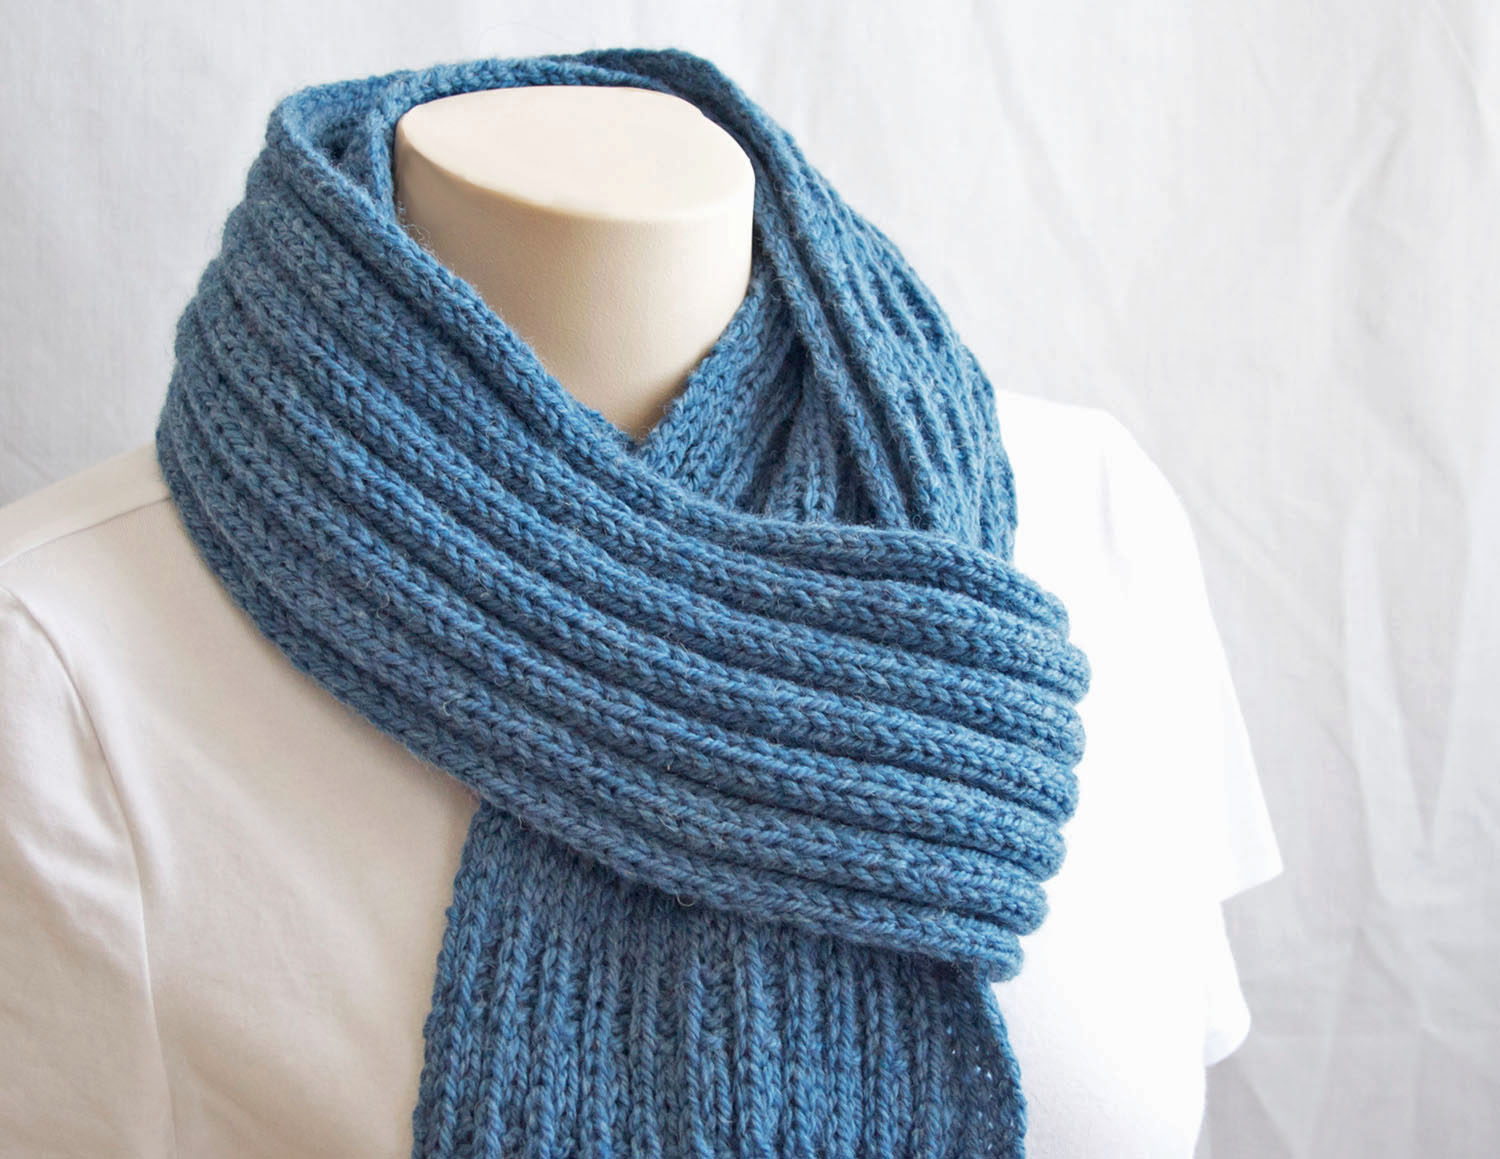 Easy Scarf Knitting Patterns For Men : Une maille a la fois: Knitting Pattern Scarf ... Patron pour un foulard